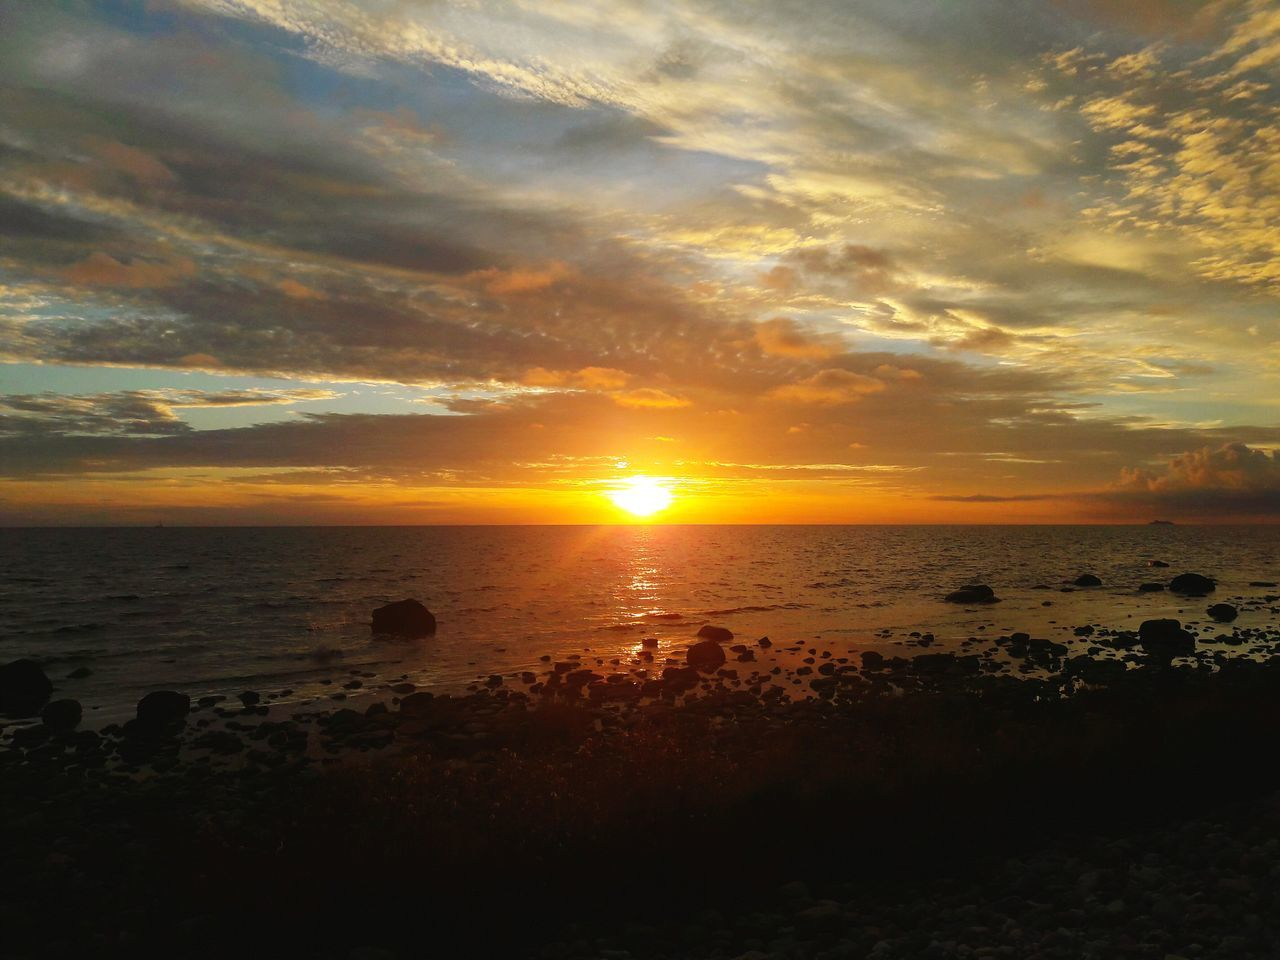 Sunset Sea Water Horizon Over Water Scenics Tranquil Scene Sun Beach Tranquility Beauty In Nature Shore Idyllic Nature Sky Calm Cloud Majestic EyeEm Nature Lover Clouds And Sky Landscape Tranquility Peace And Quiet Orange Color Seascape Non-urban Scene